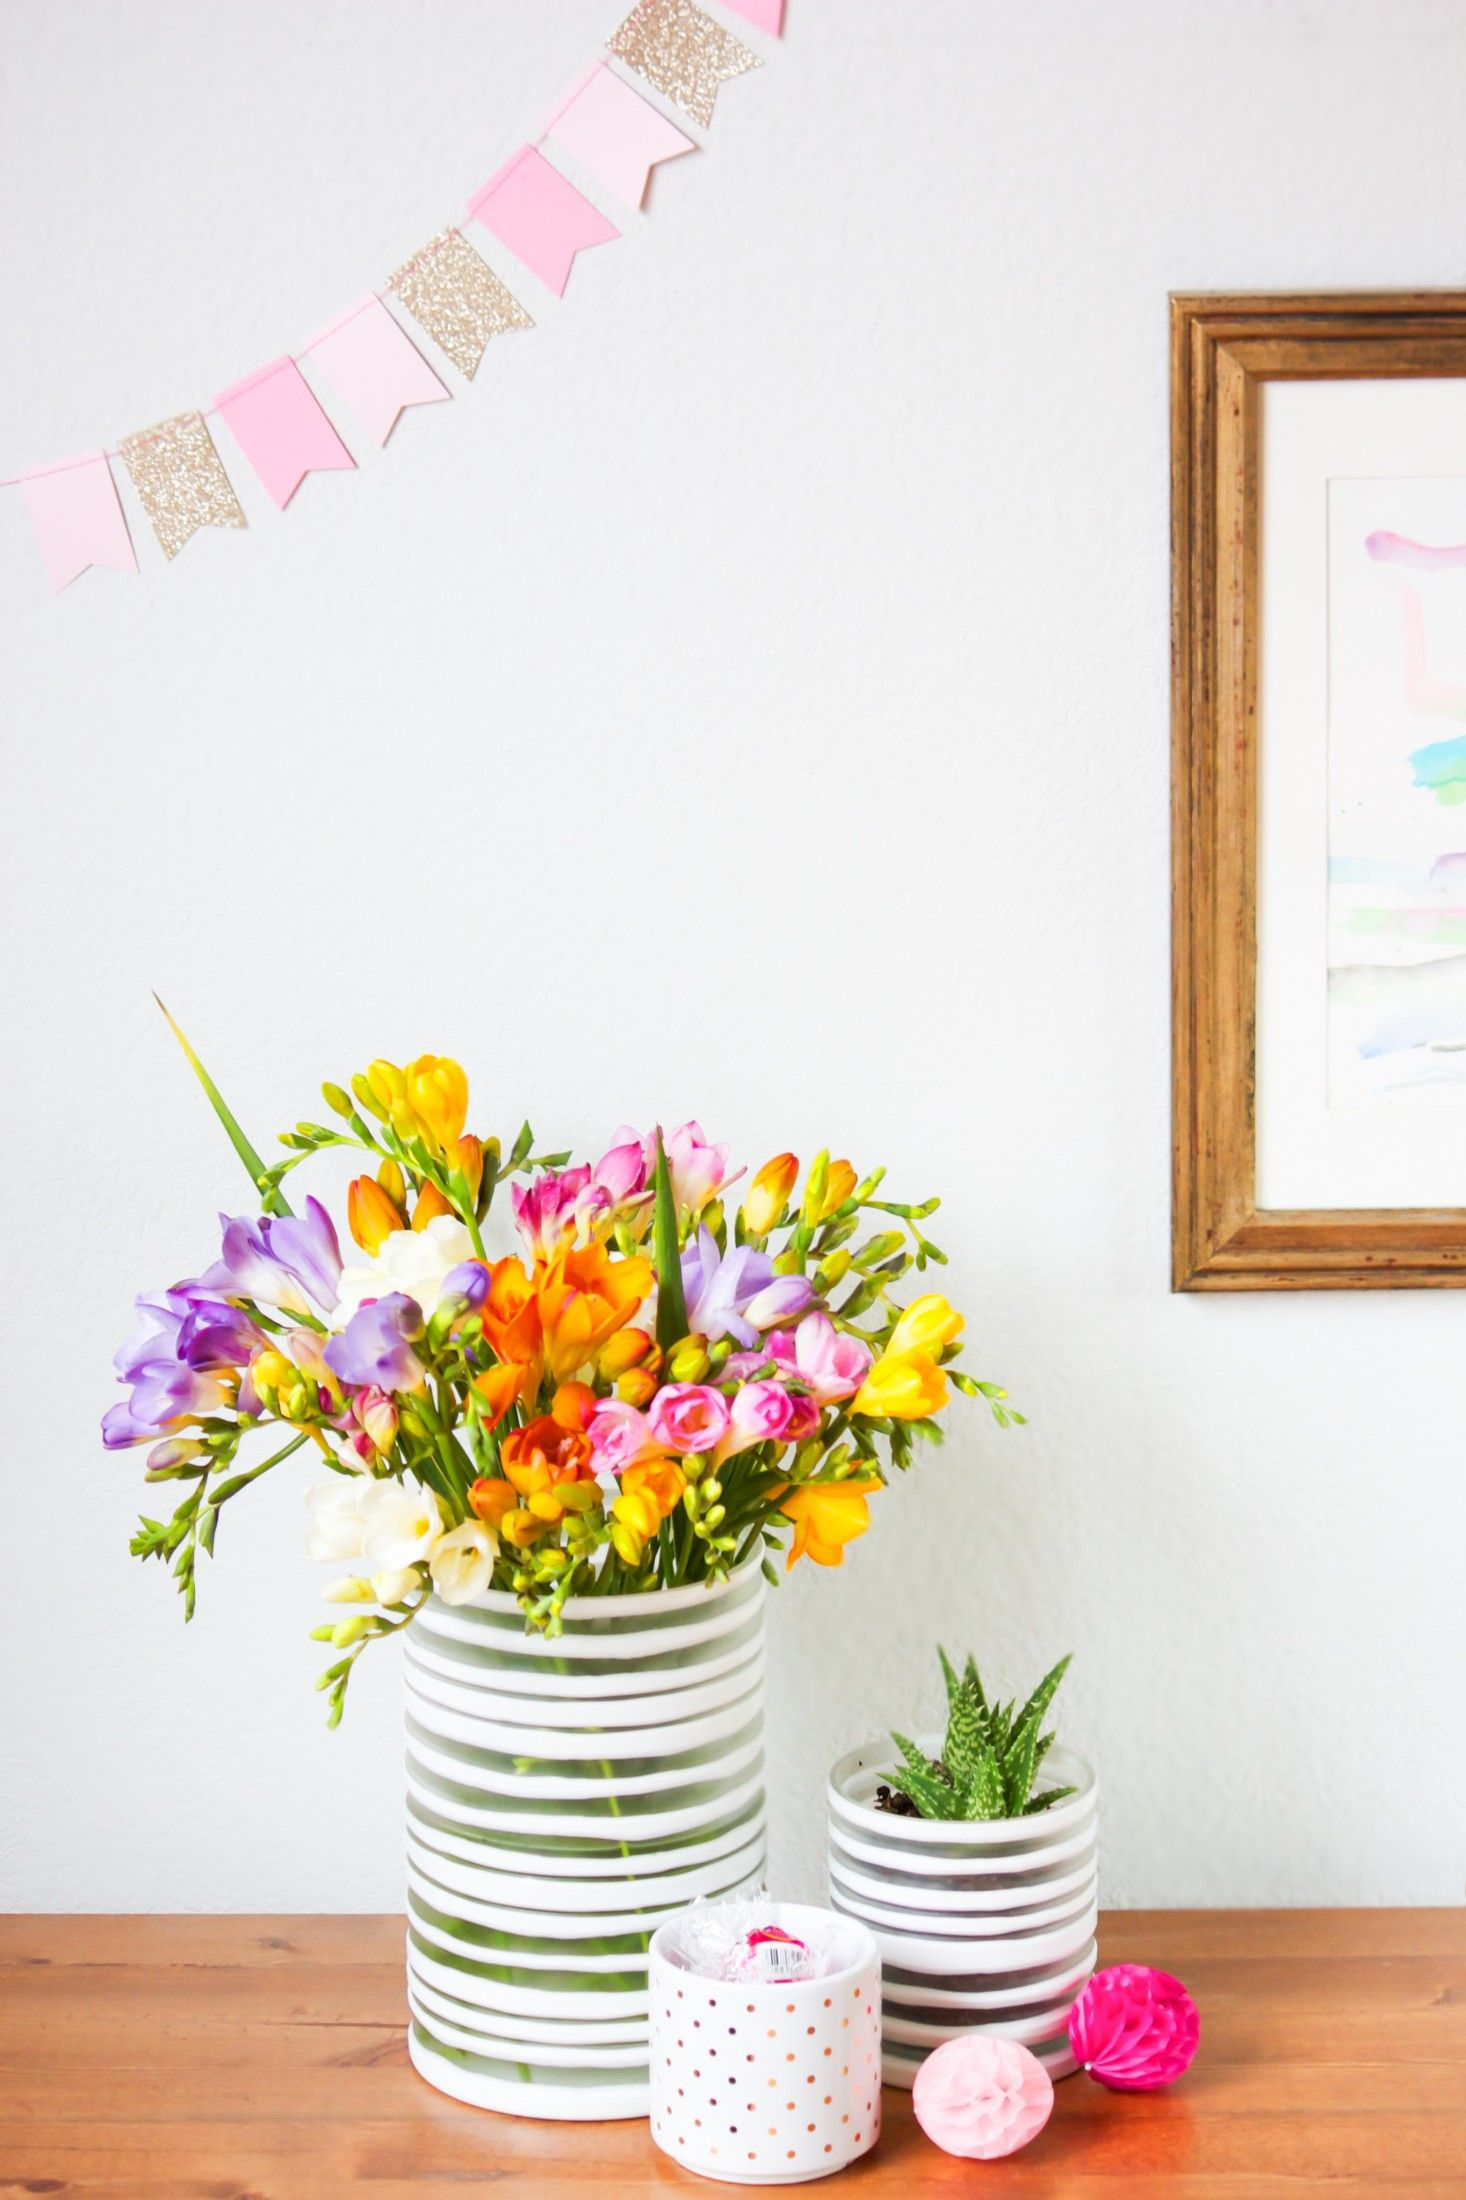 Fresh fressia from The Bouqs along side cactus, candy and pink party ...